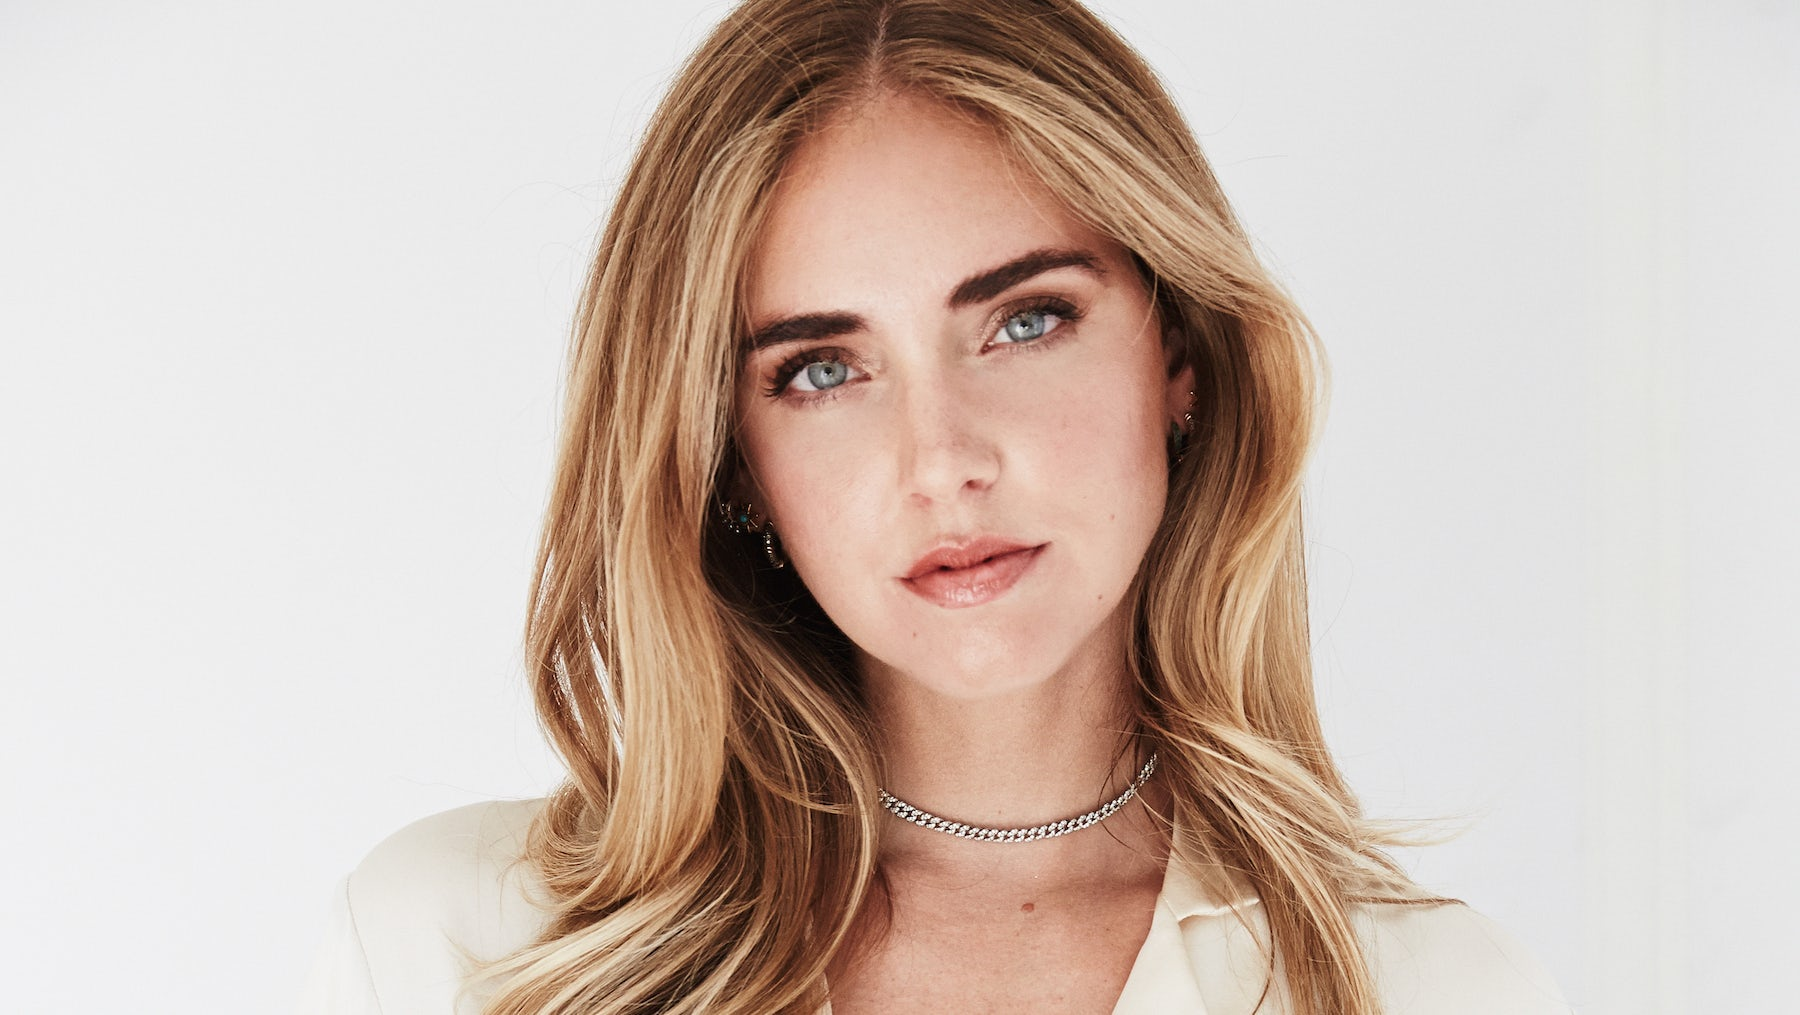 Chiara Ferragni, founder of The Blonde Salad. Chiara Ferragni.